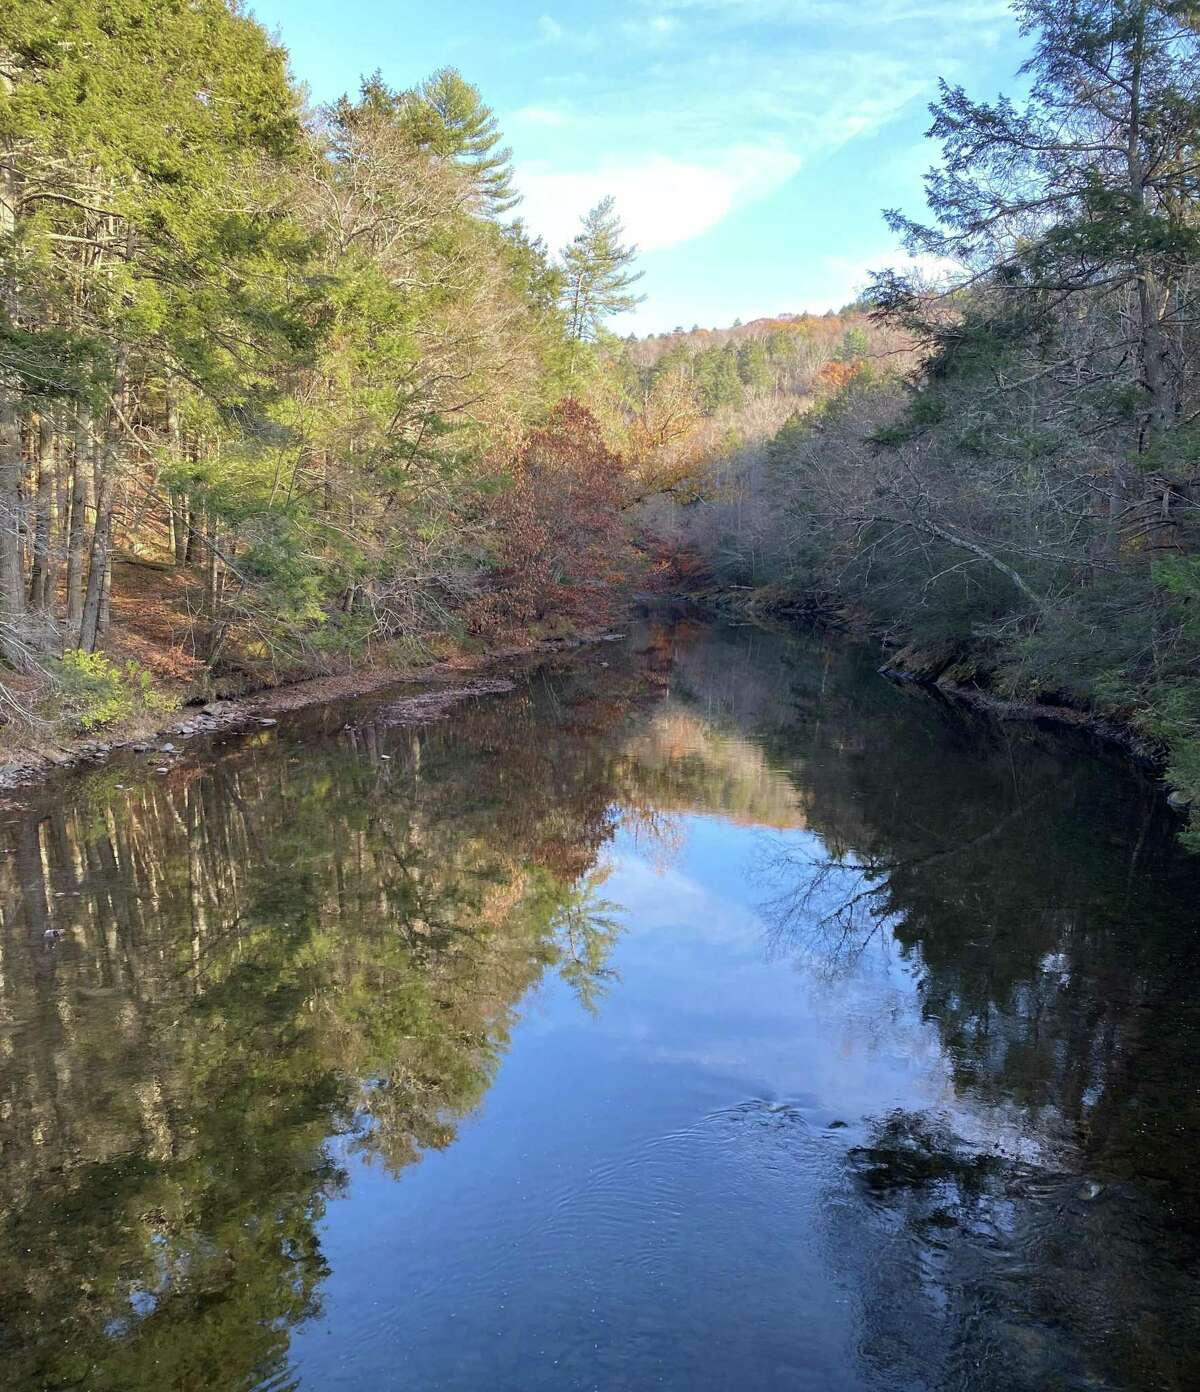 The Shepaug River, as seen from Hauser Footbridge at Steep Rock Preserve, in Washington reflects late autumnal splendor.